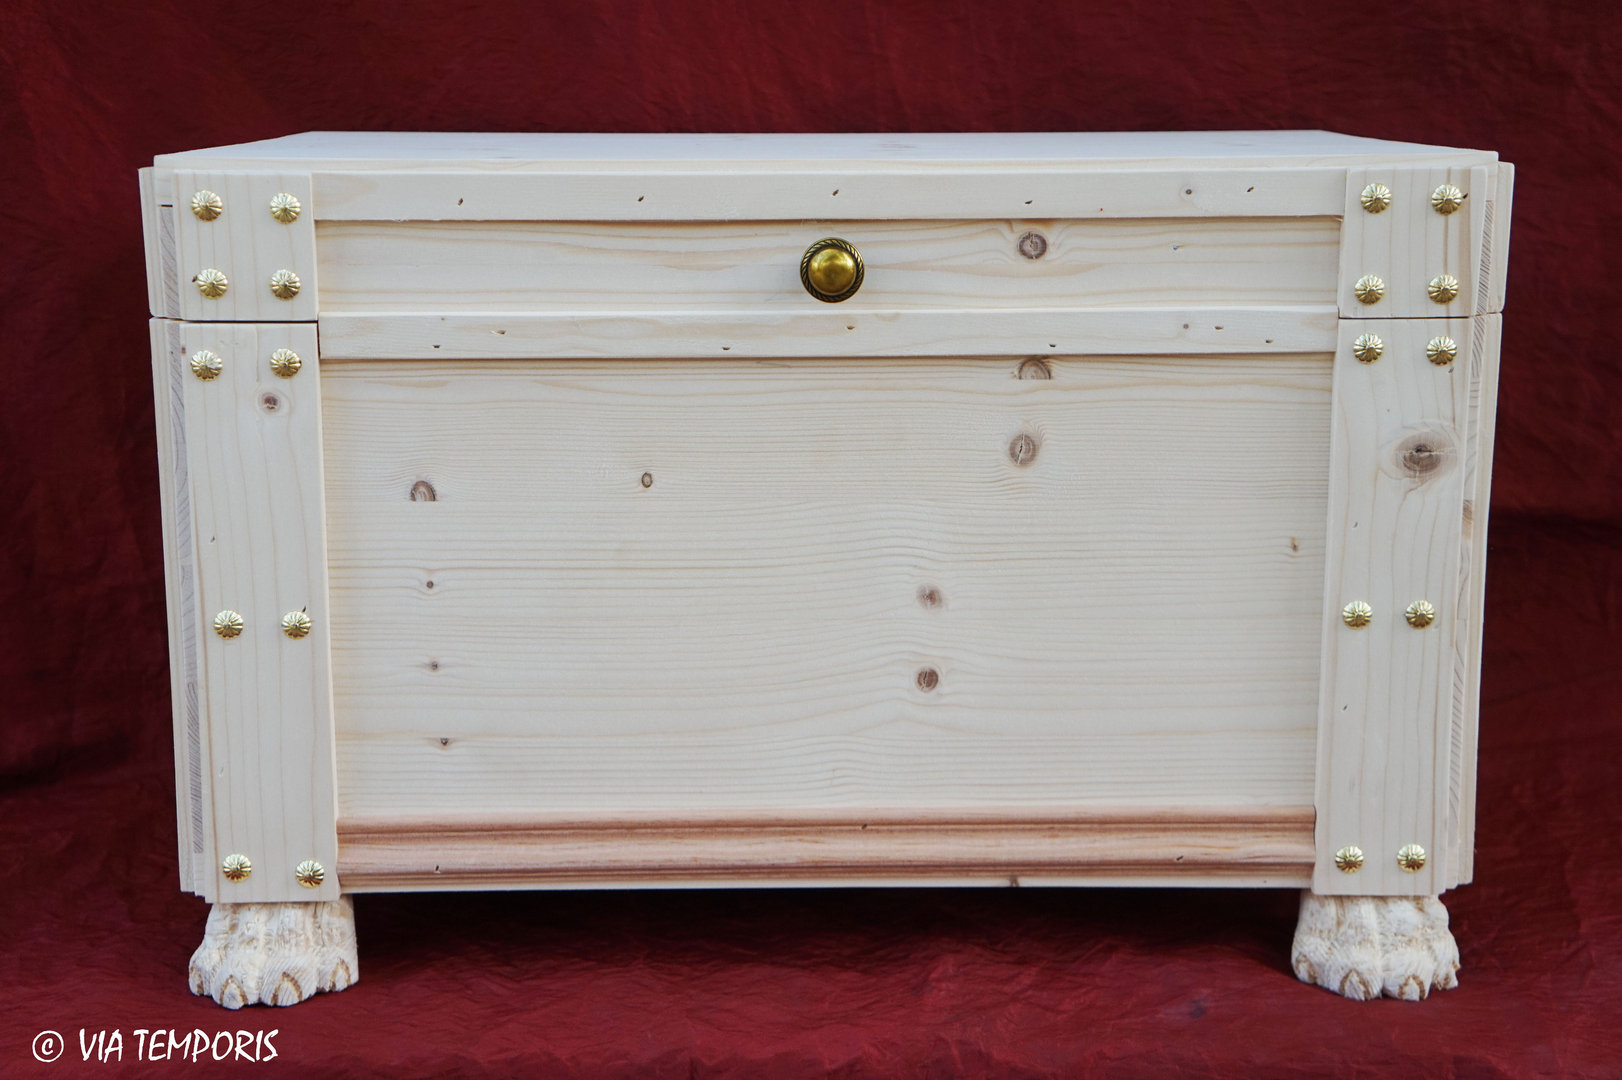 ANTIQUE FURNITURE - GREAT LUXURY CHEST